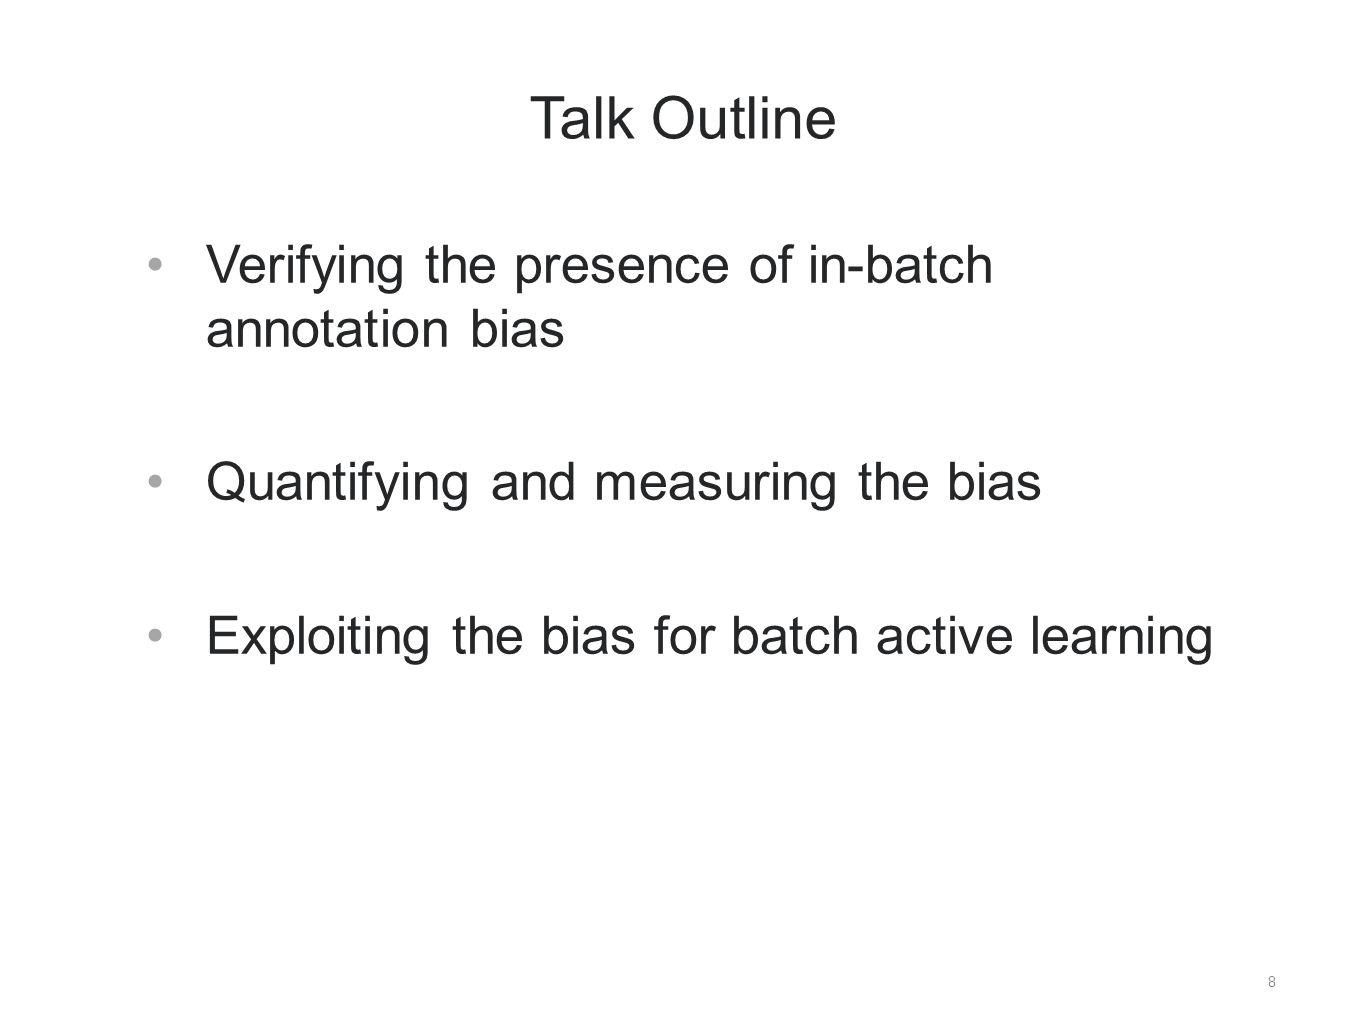 8 Talk Outline Verifying the presence of in-batch annotation bias Quantifying and measuring the bias Exploiting the bias for batch active learning